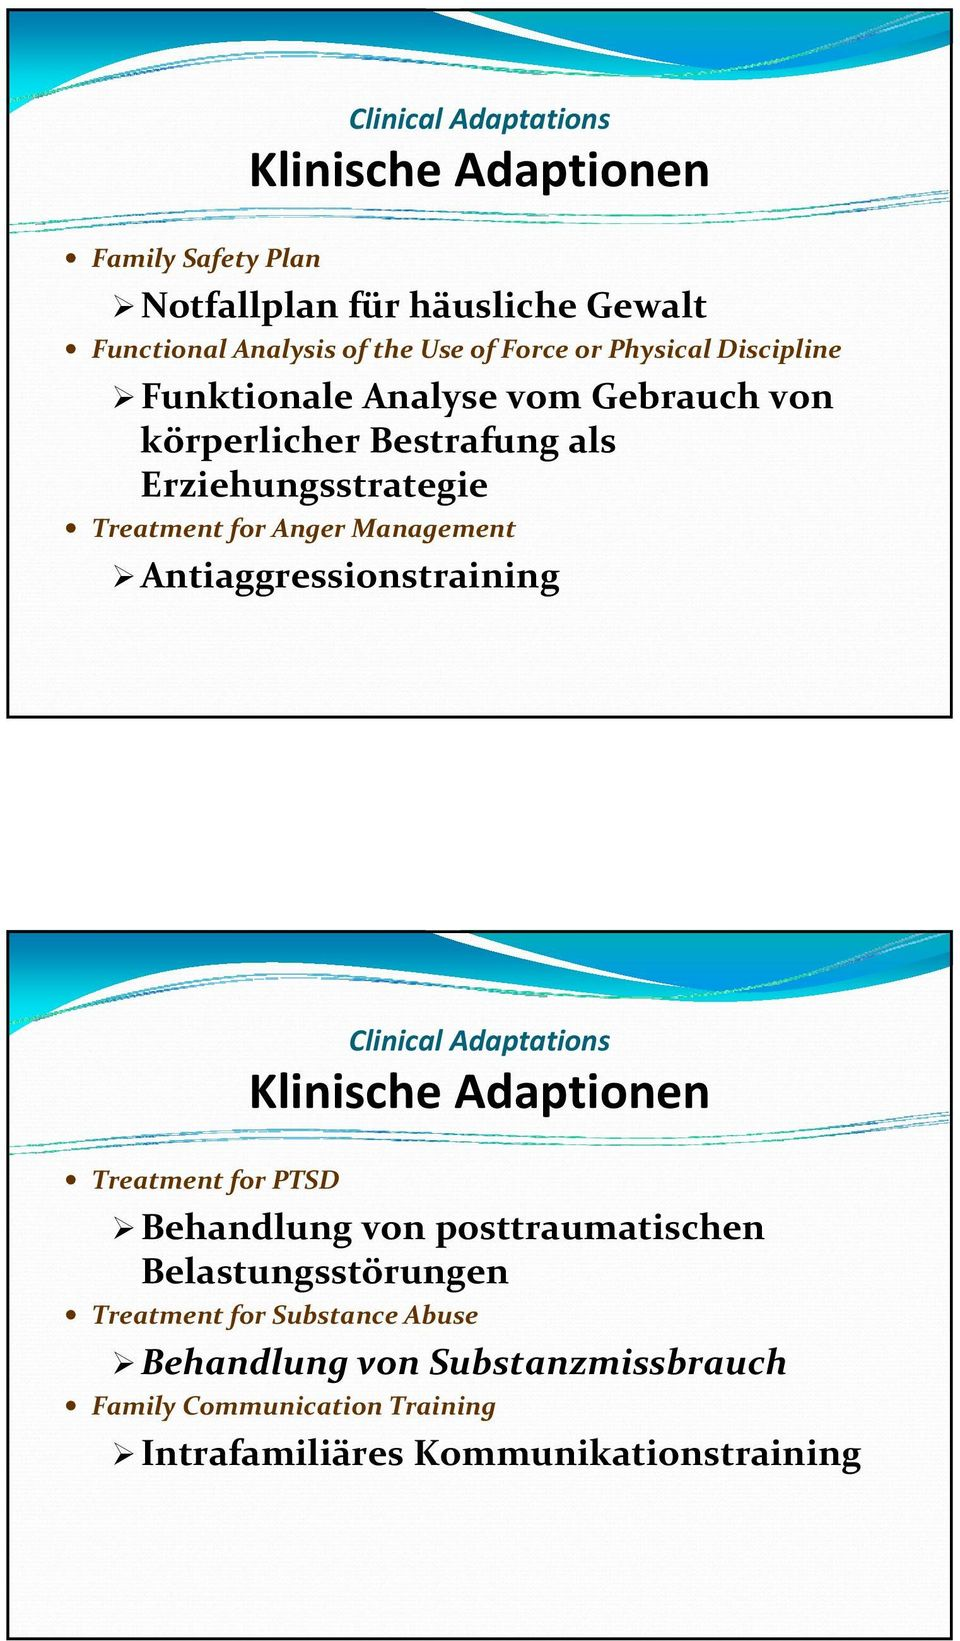 Management Antiaggressionstraining Clinical Adaptations Klinische Adaptionen Treatment for PTSD Behandlung von posttraumatischen